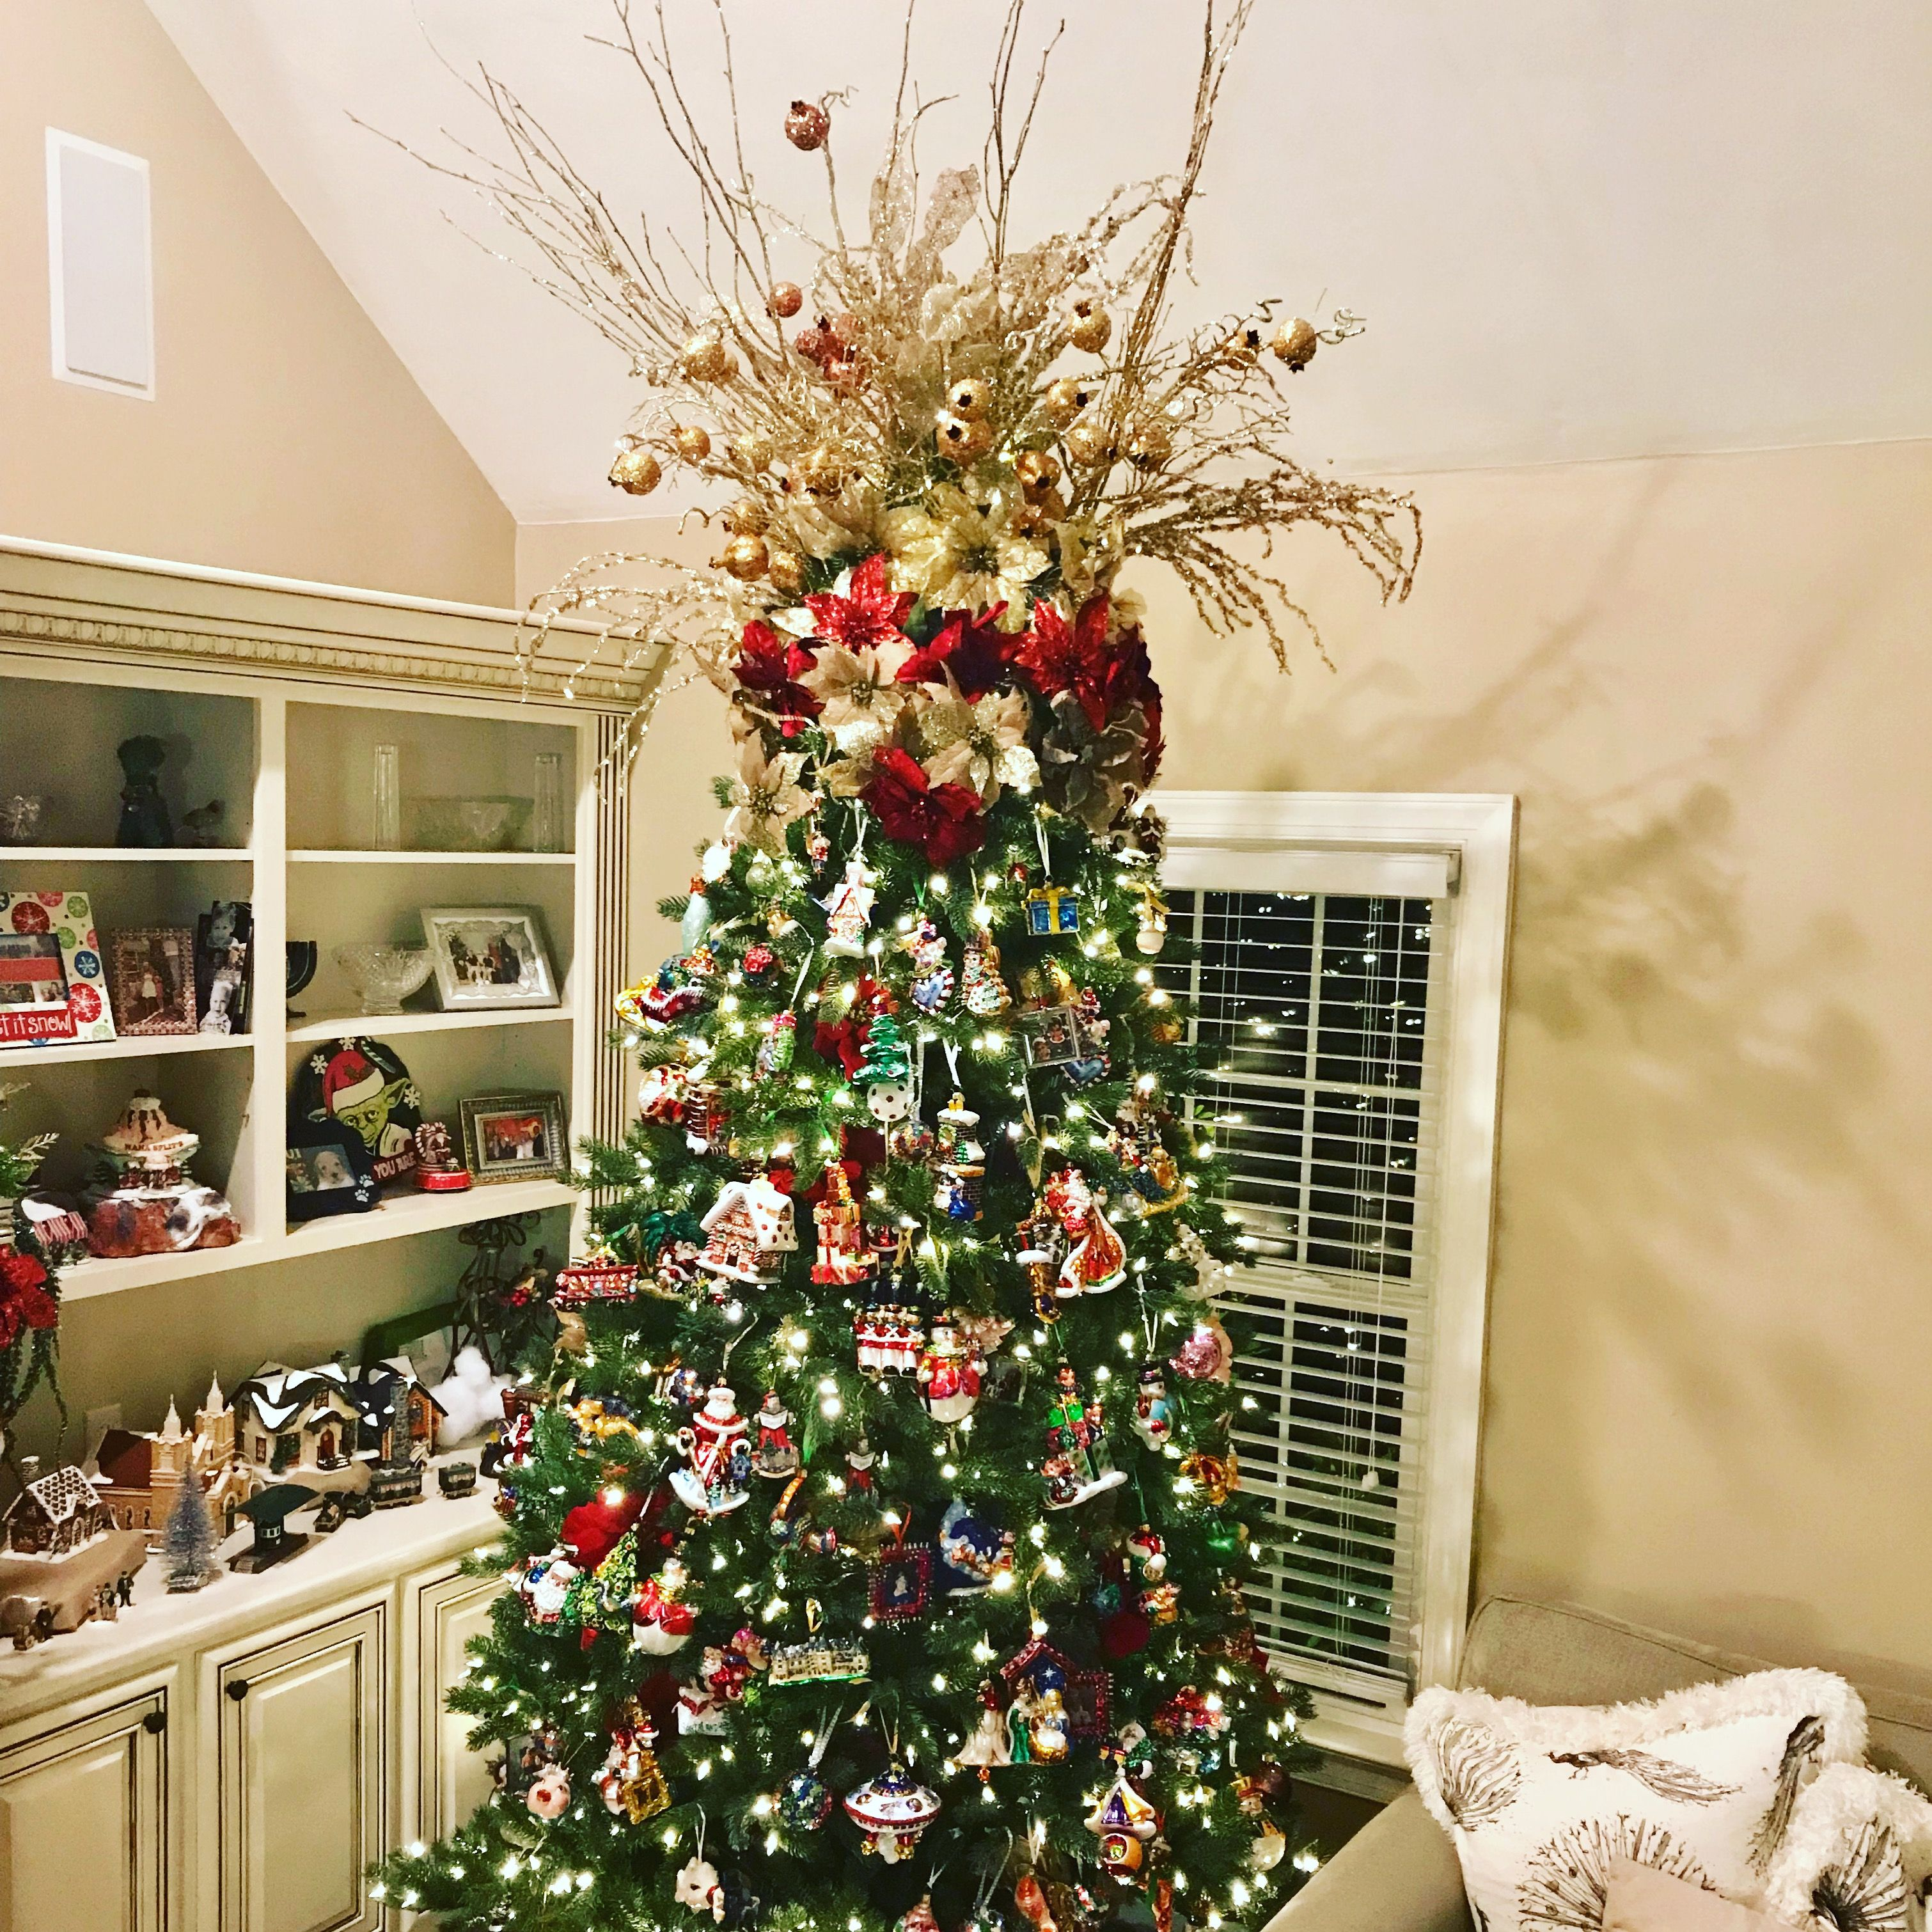 Pin by smiley pits deodorant on christmas decorations pinterest